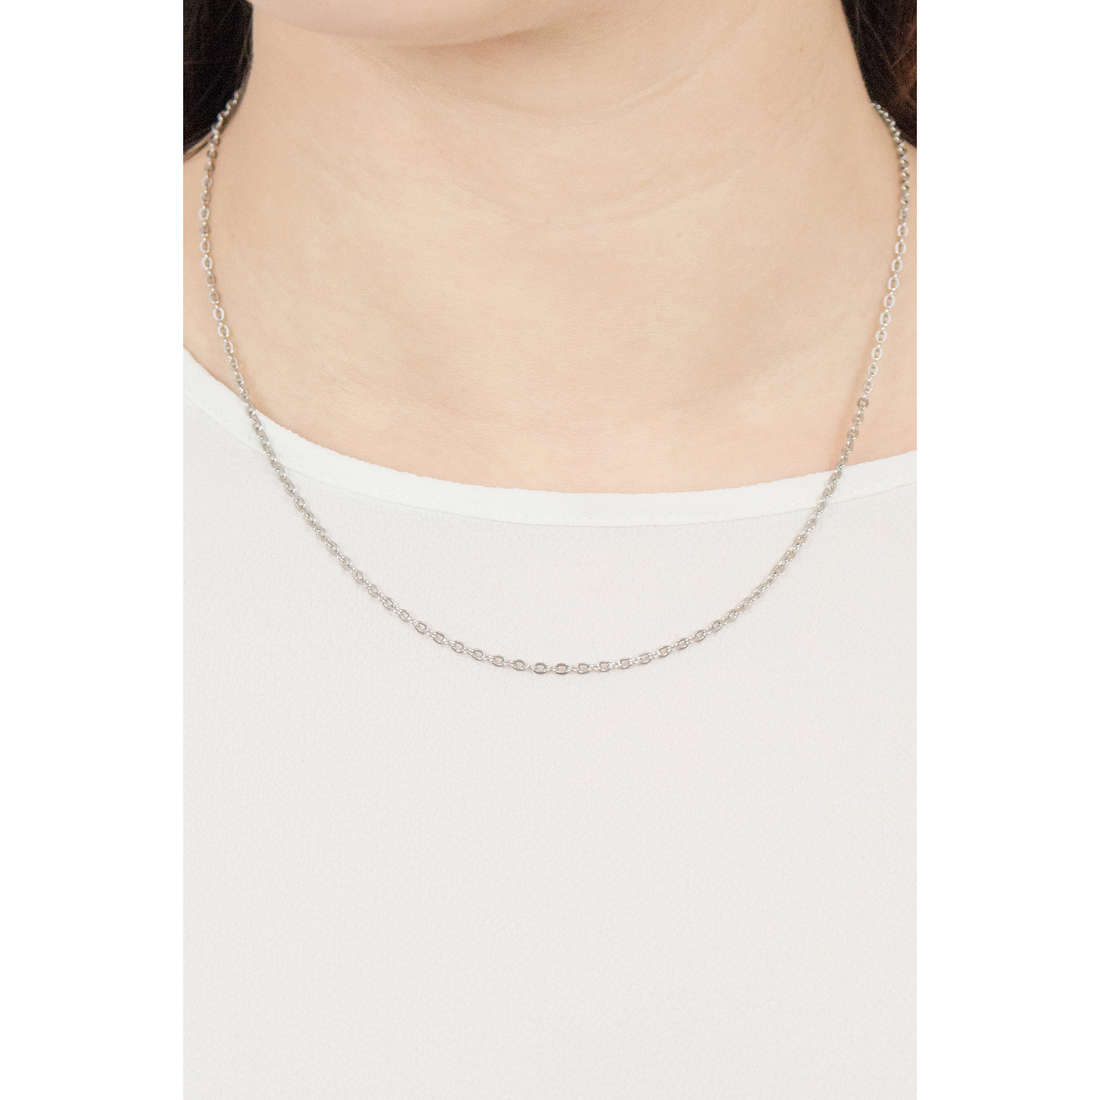 Brosway necklaces Tres Jolie Mini woman BBCT16 photo wearing